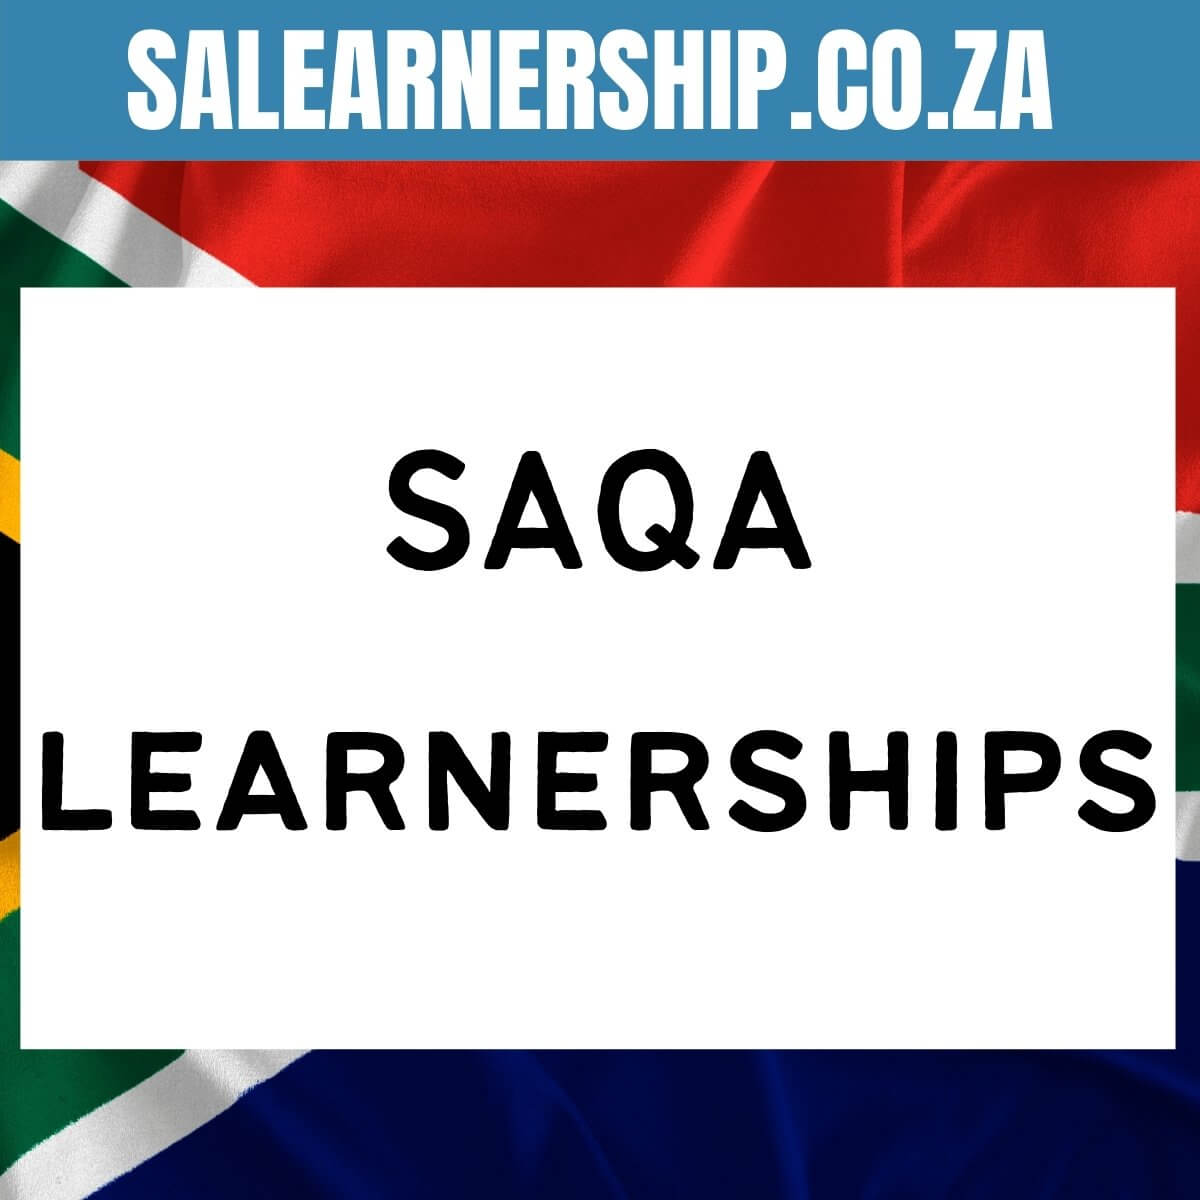 SAQA learnerships